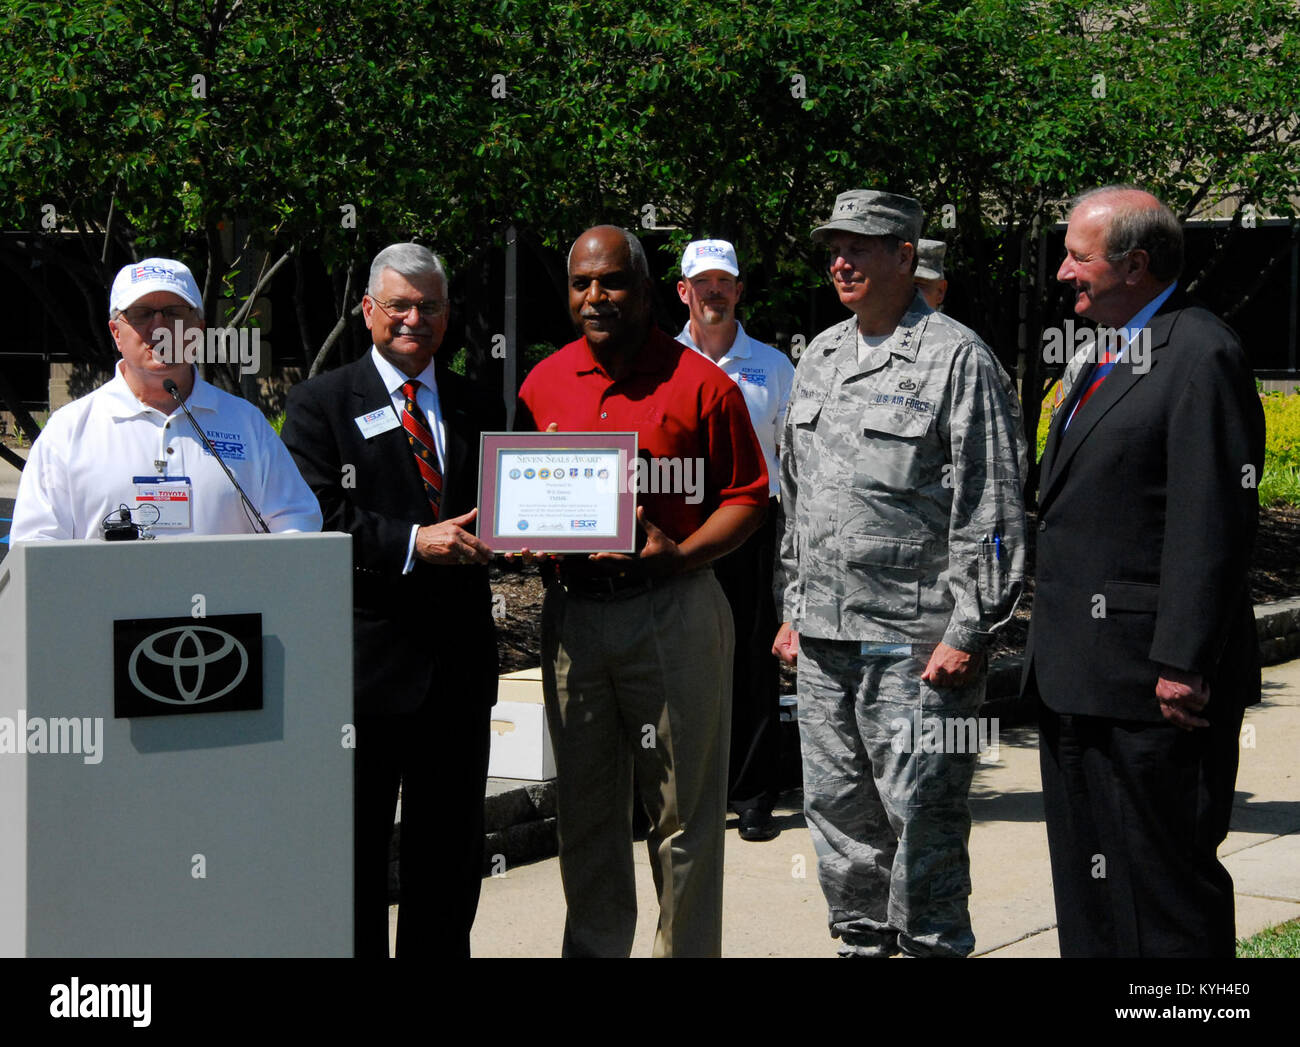 Toyota Motor Manufacturing Company Was Honored By The Kentucky Employer  Support To The Guard And Reserve In Which Multiple Awards Were Presented To  The ...